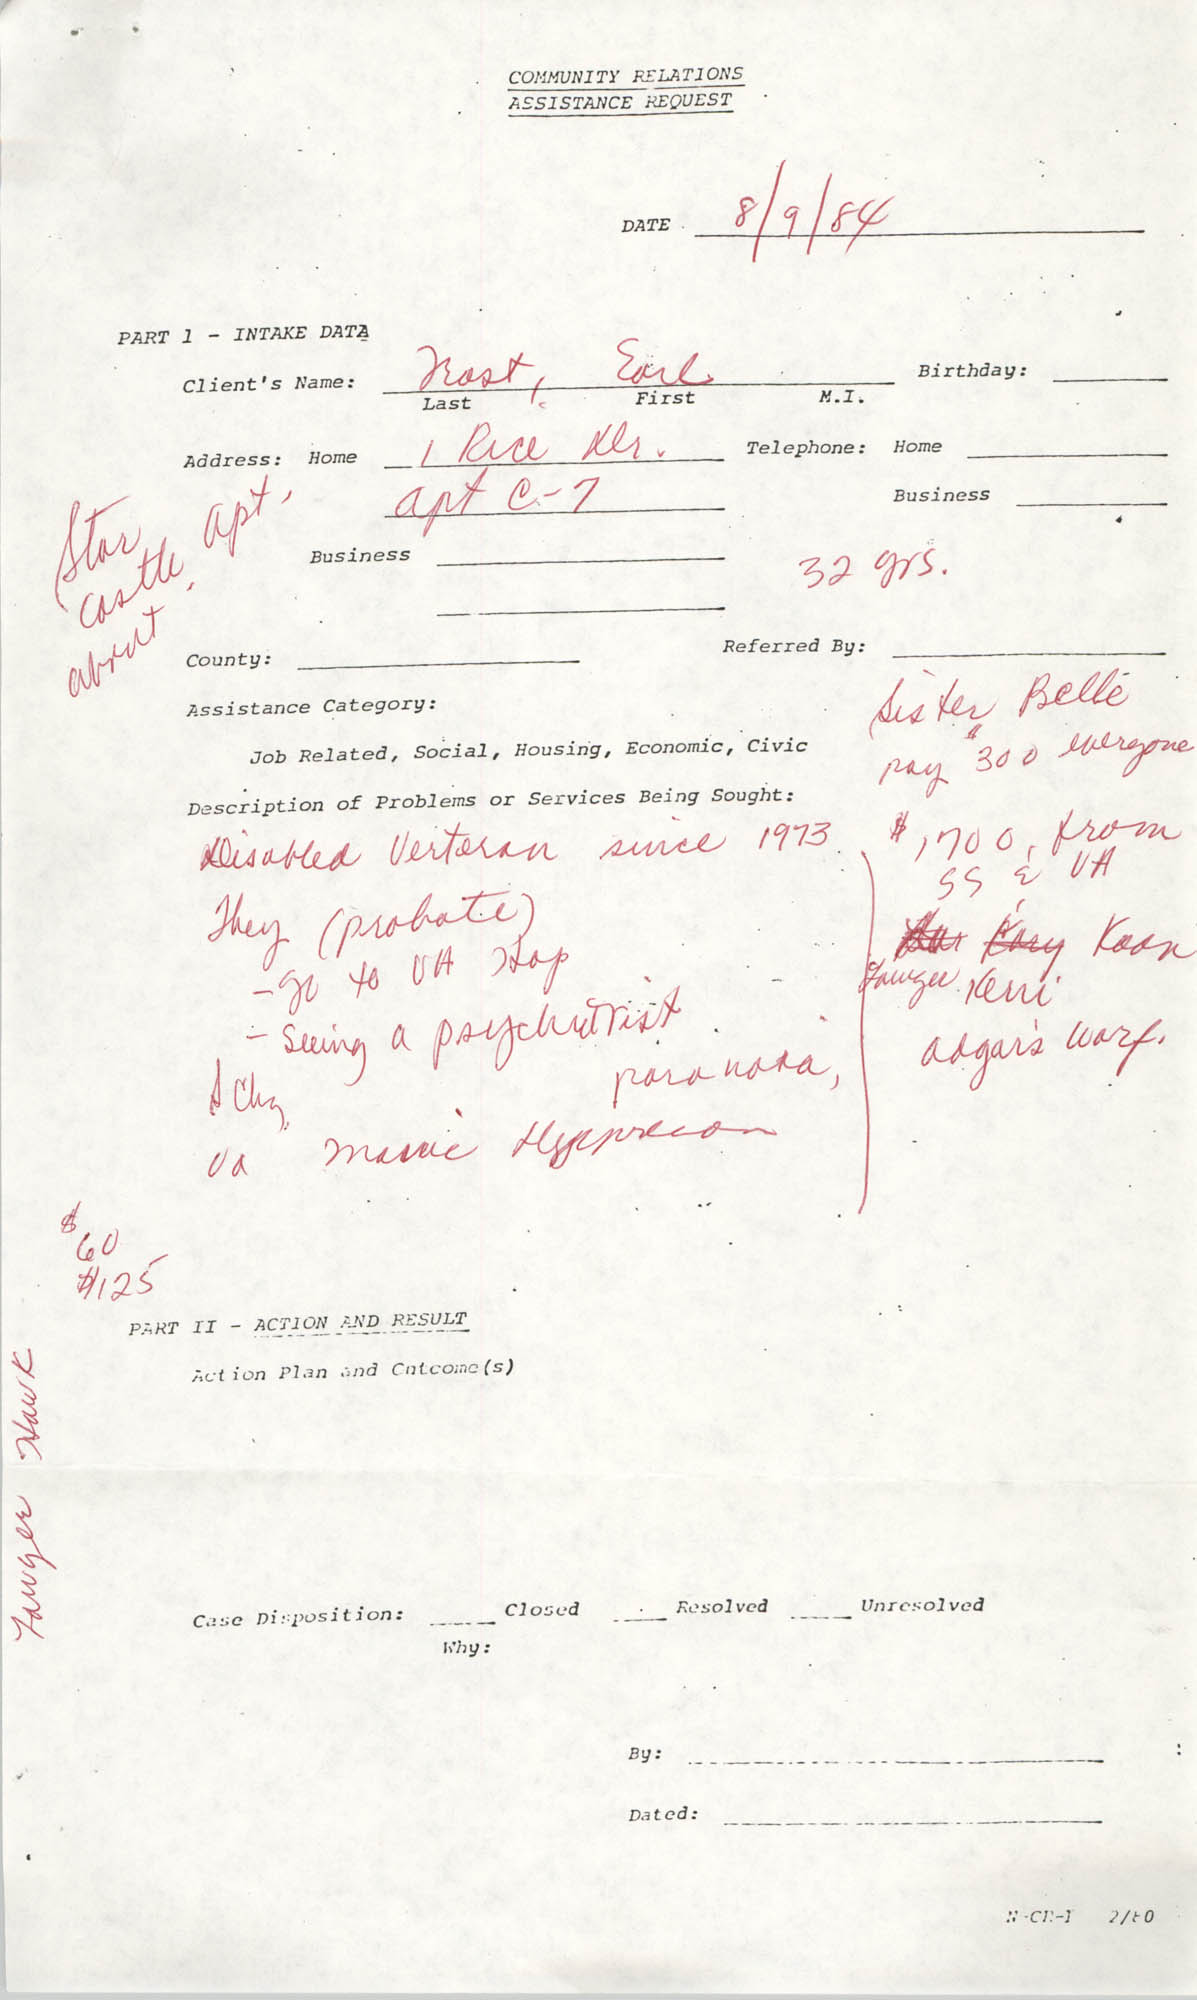 Community Relations Assistance Request, August 9, 1984